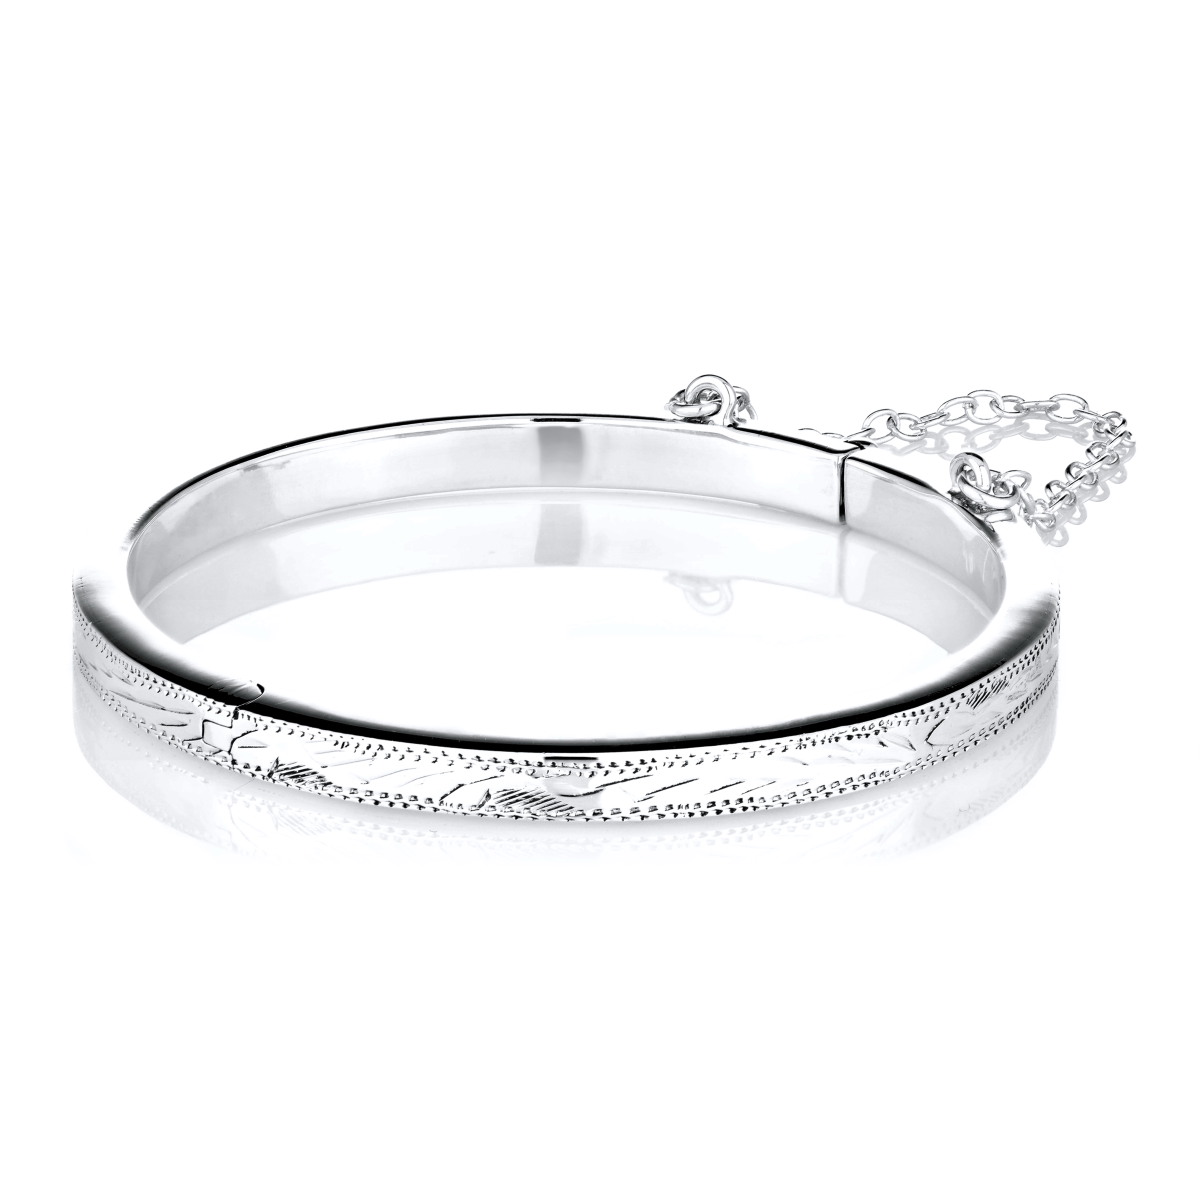 Lucy S Etched Sterling Silver Baby Bangle Bracelet 51 Mm